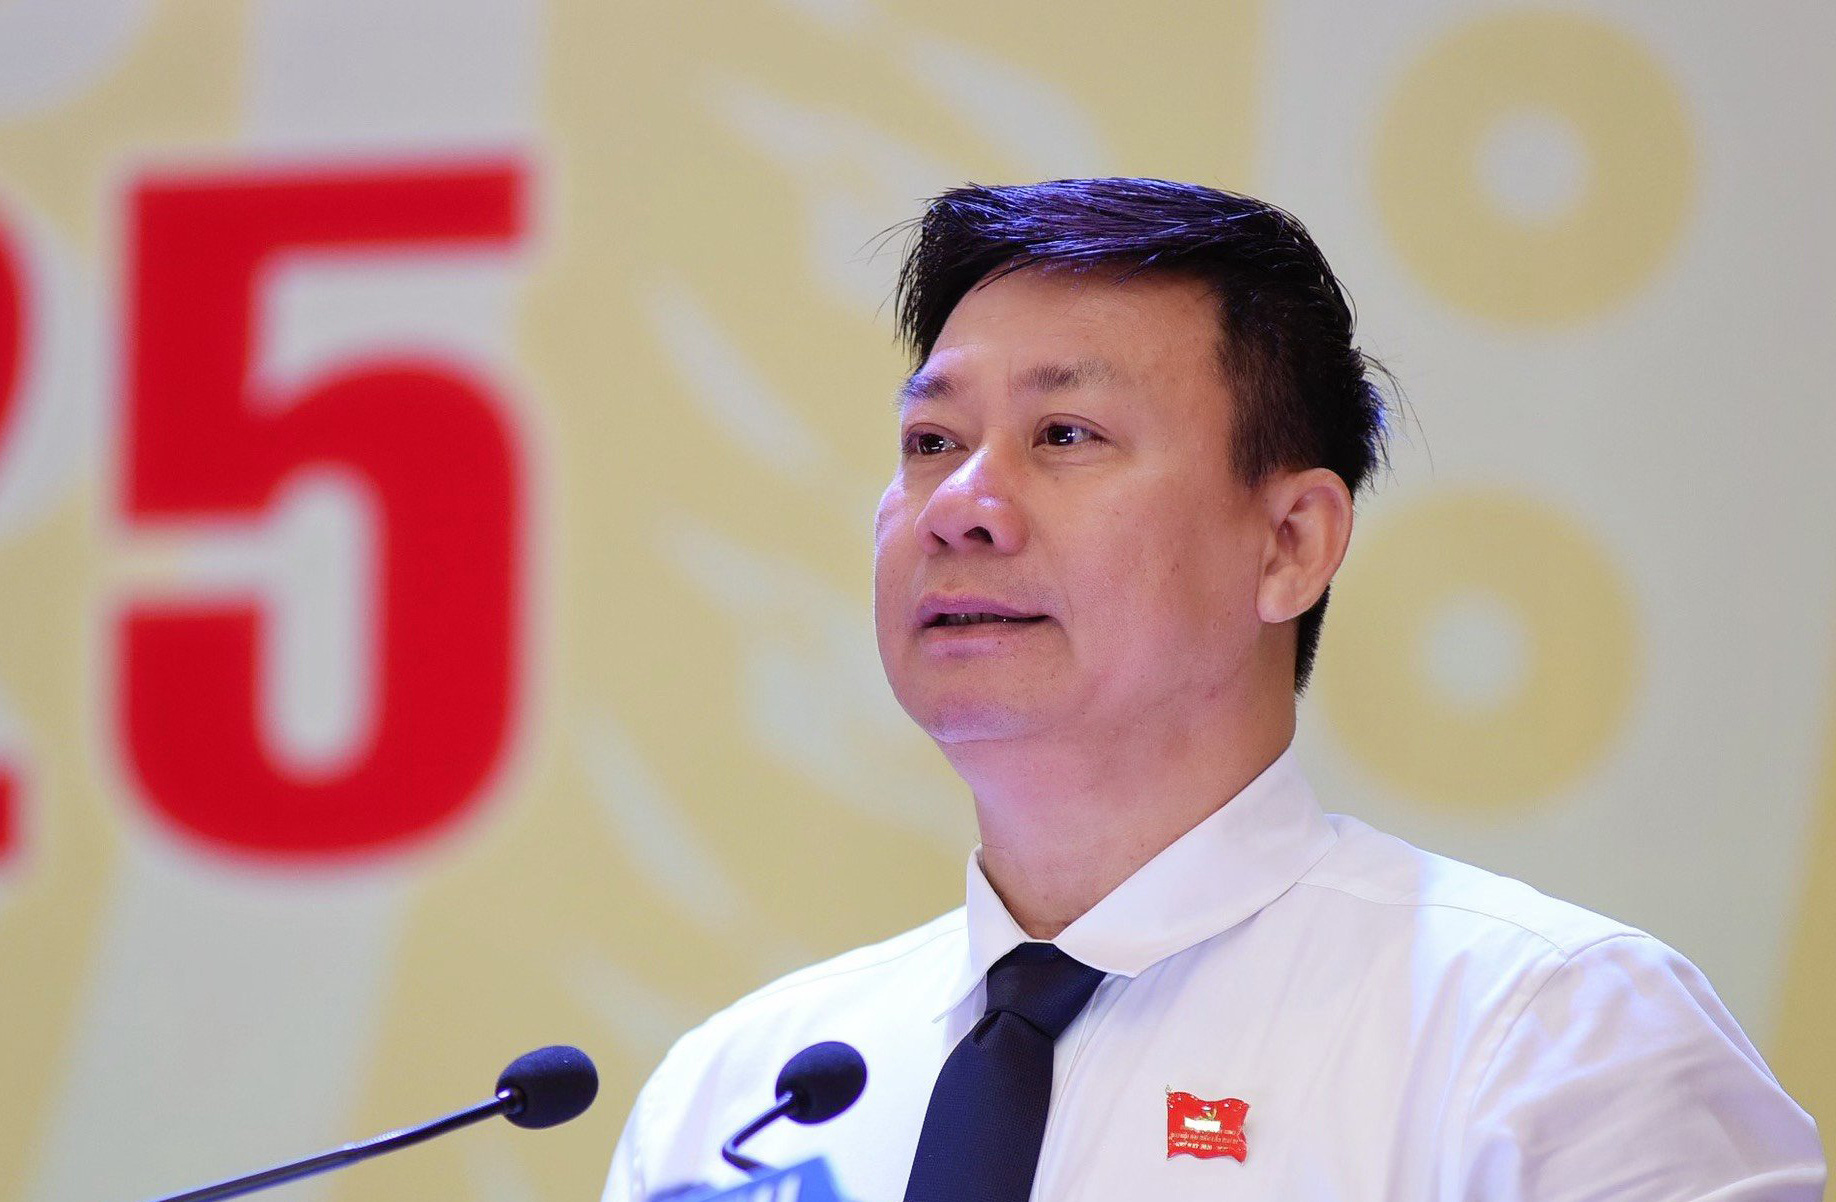 Nguyen Thanh Ngoc, chairman of the People's Committee in Tay Ninh Province, Vietnam. Photo: Tuoi Tre